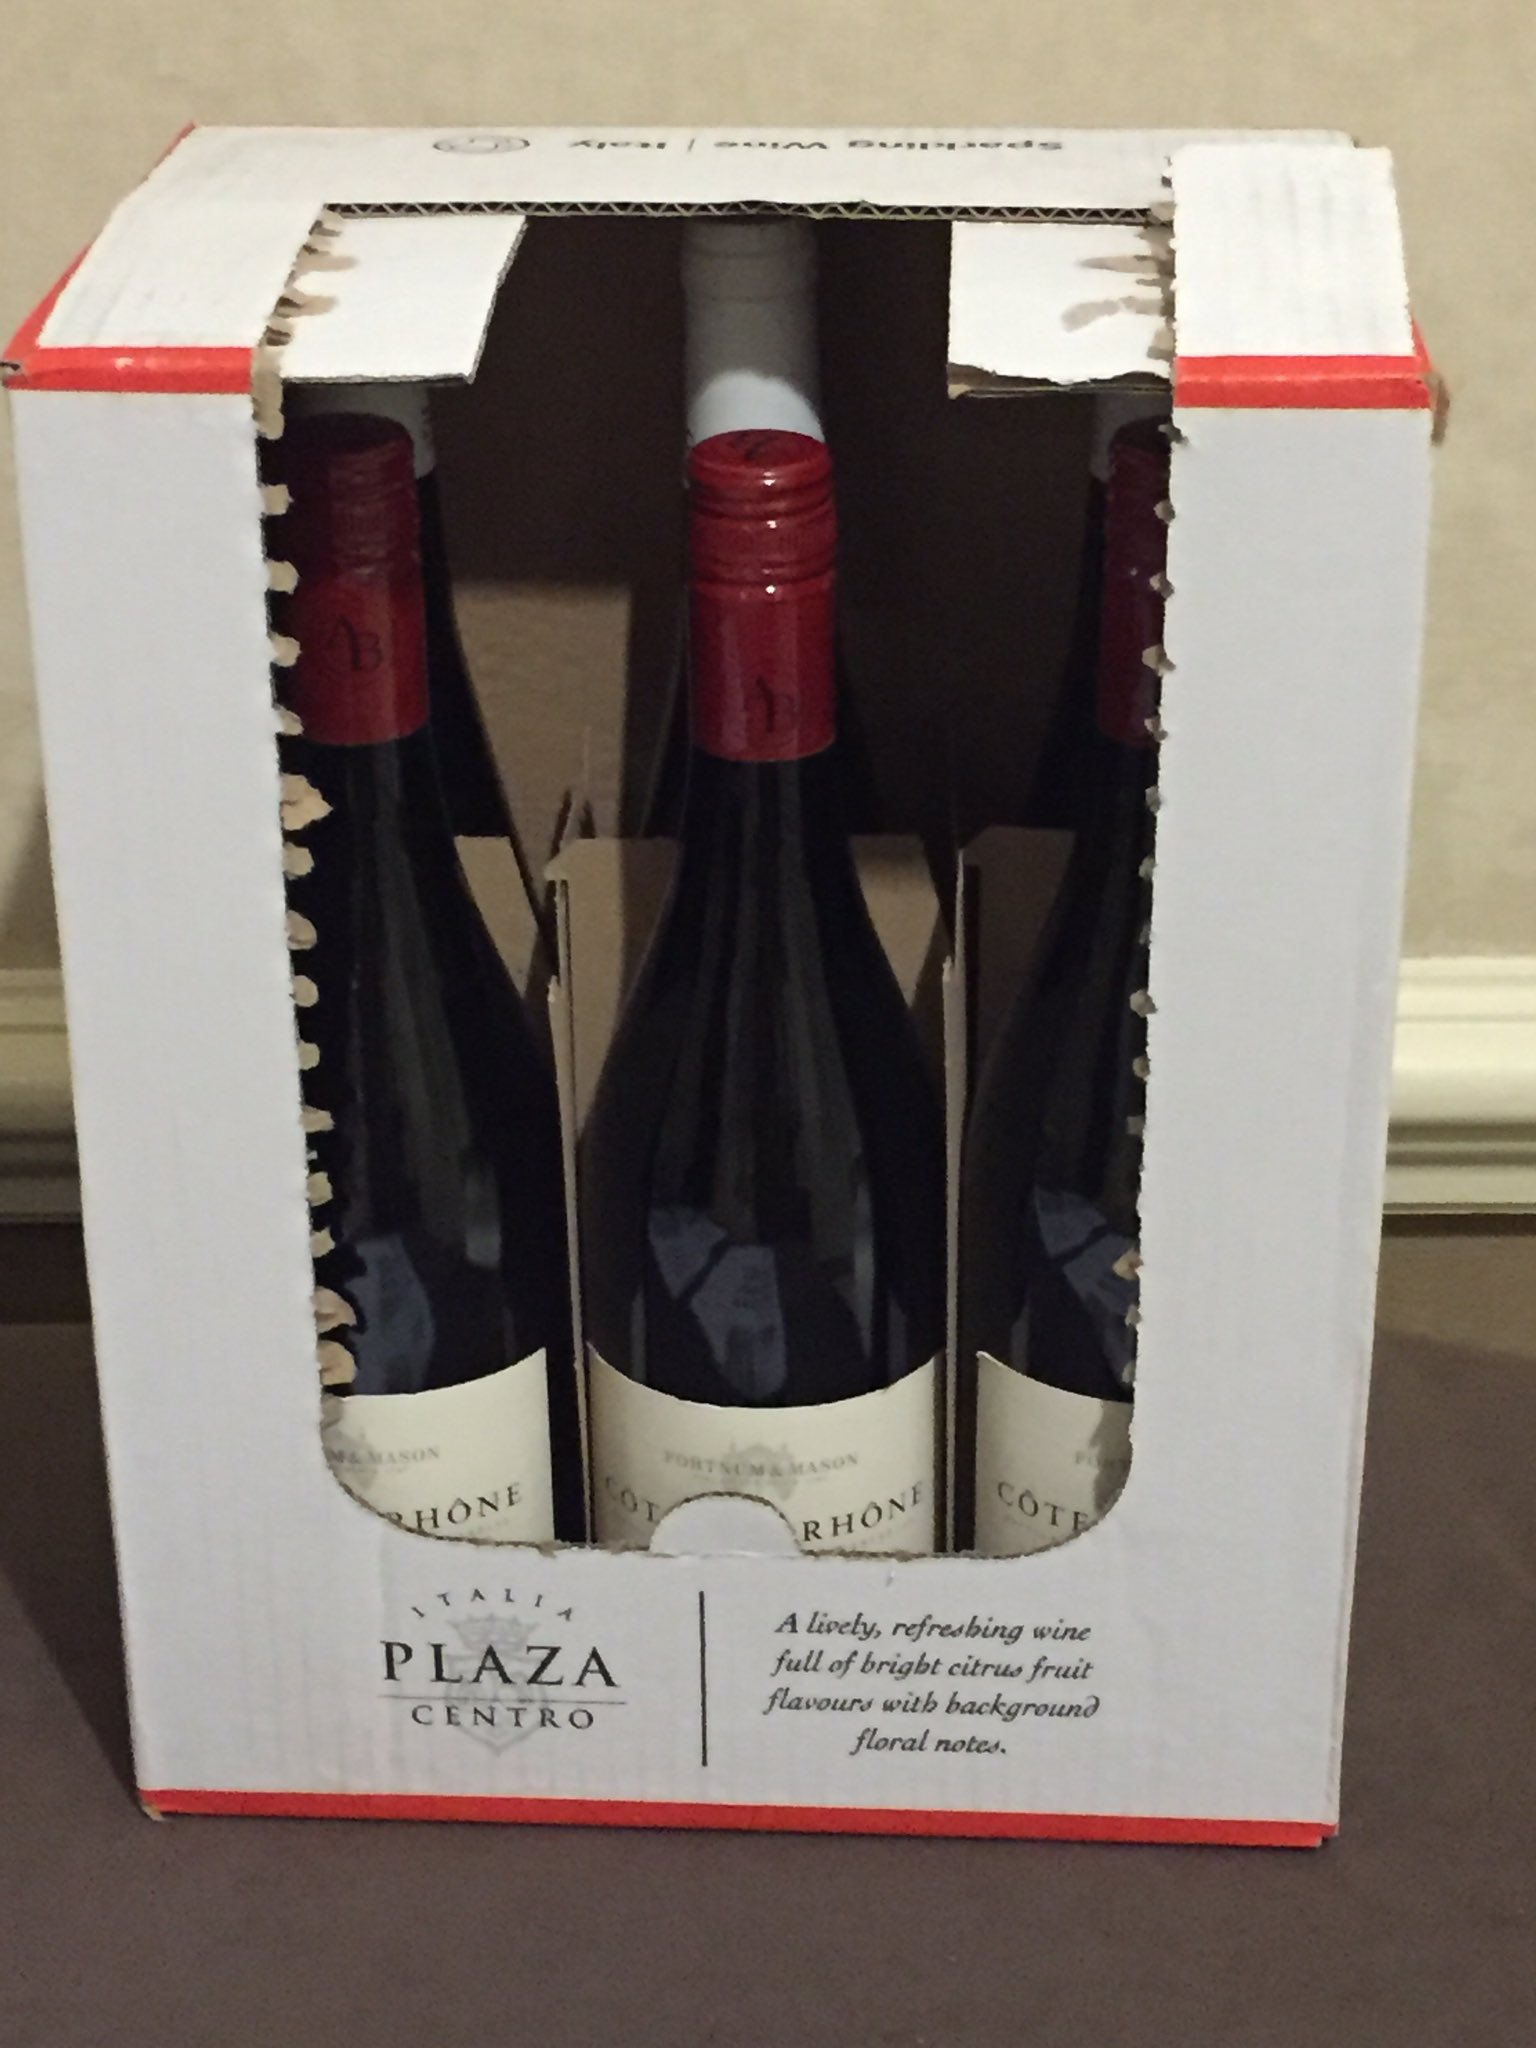 We're running a raffle at #wilconference16 for a case of @Fortnums wine-@ClareBottle will be coming round! https://t.co/tcHVL6u3hs